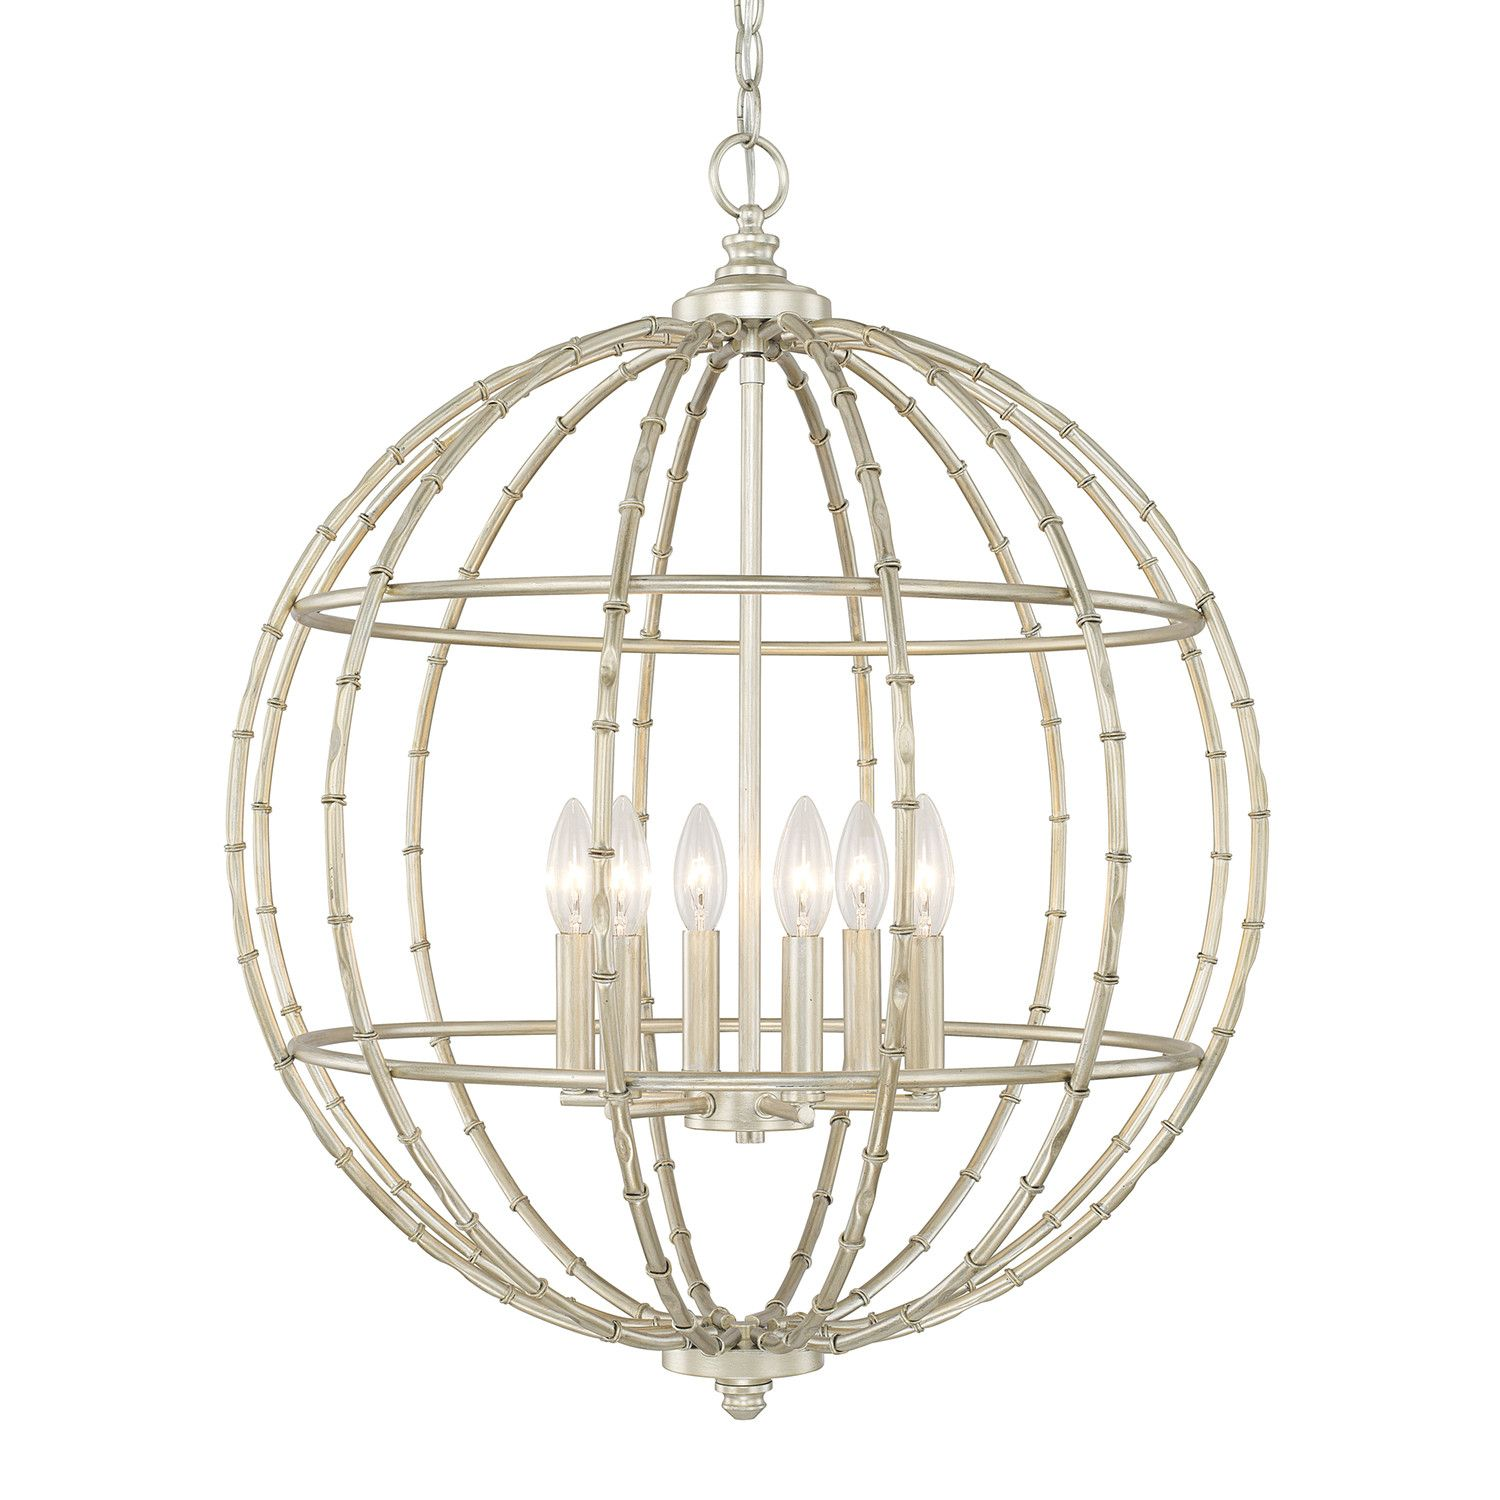 Capital lighting 311861sf soft gold 6 light chinese chippendale orb pendants soft gold six light pendant capital lighting fixture company globe pendant lighti arubaitofo Gallery